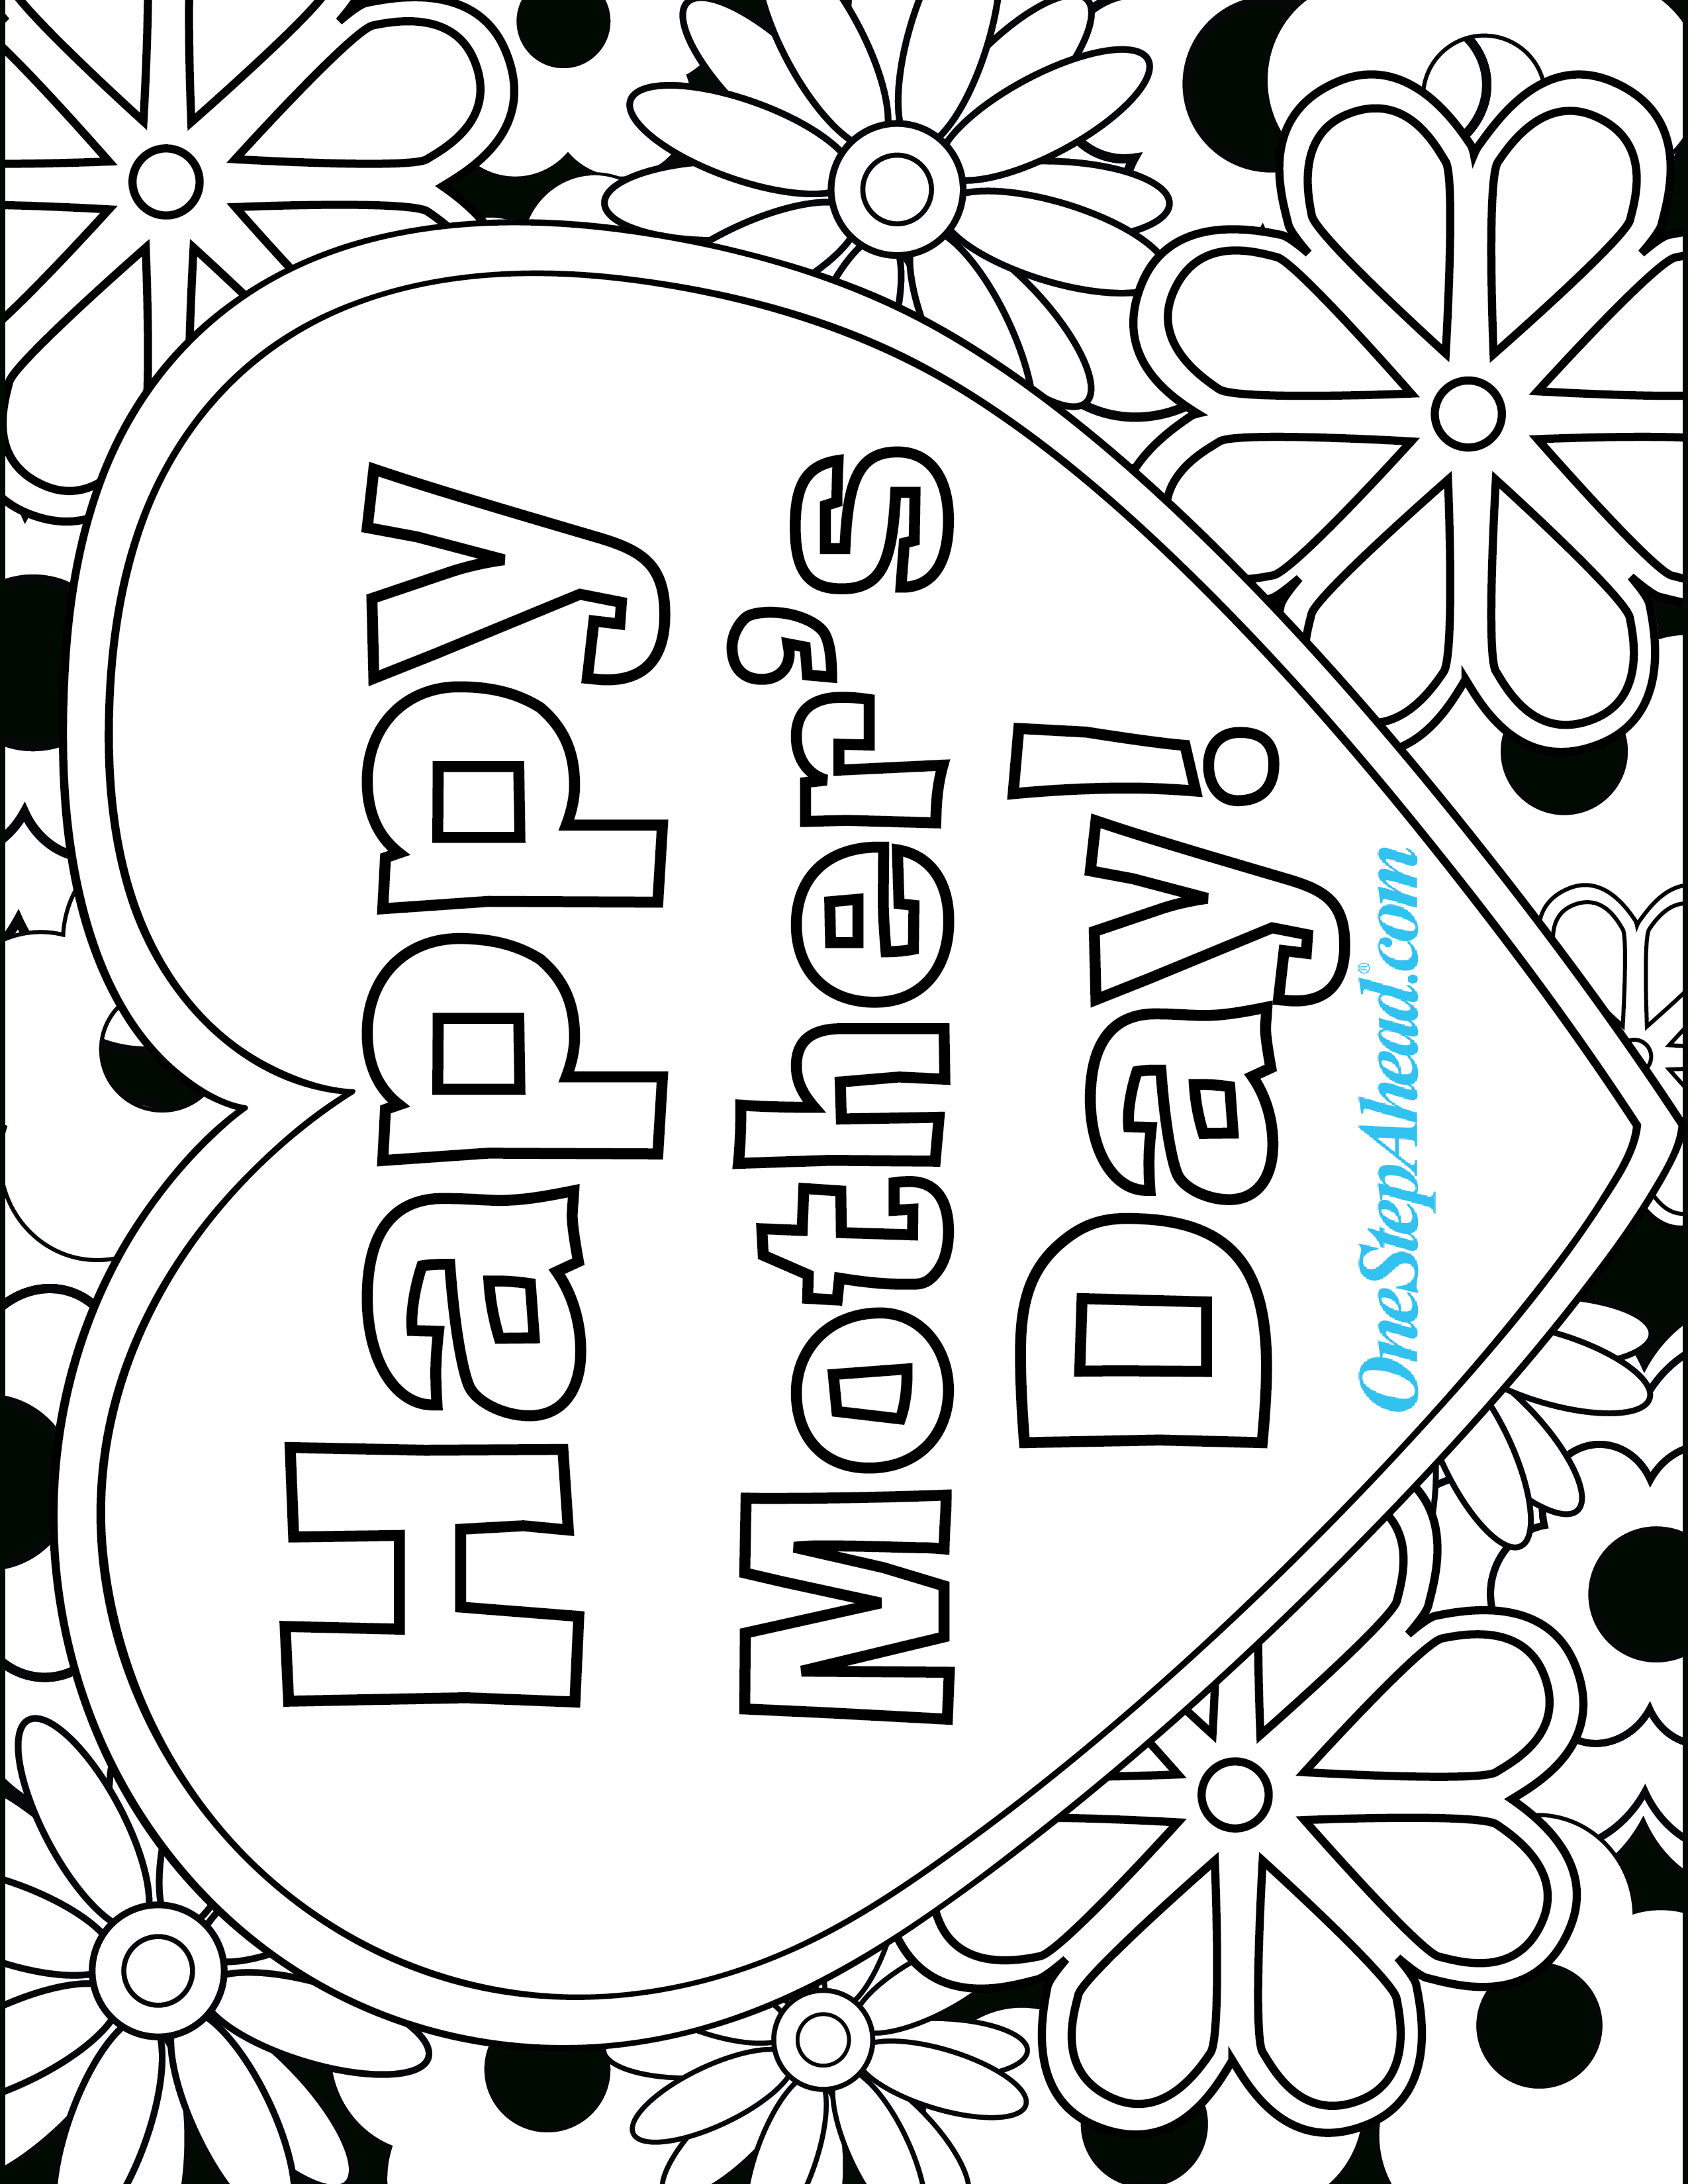 Happy Mother's Day Free Coloring Page Printable For Kids! | Mother's - Free Printable Mothers Day Coloring Pages